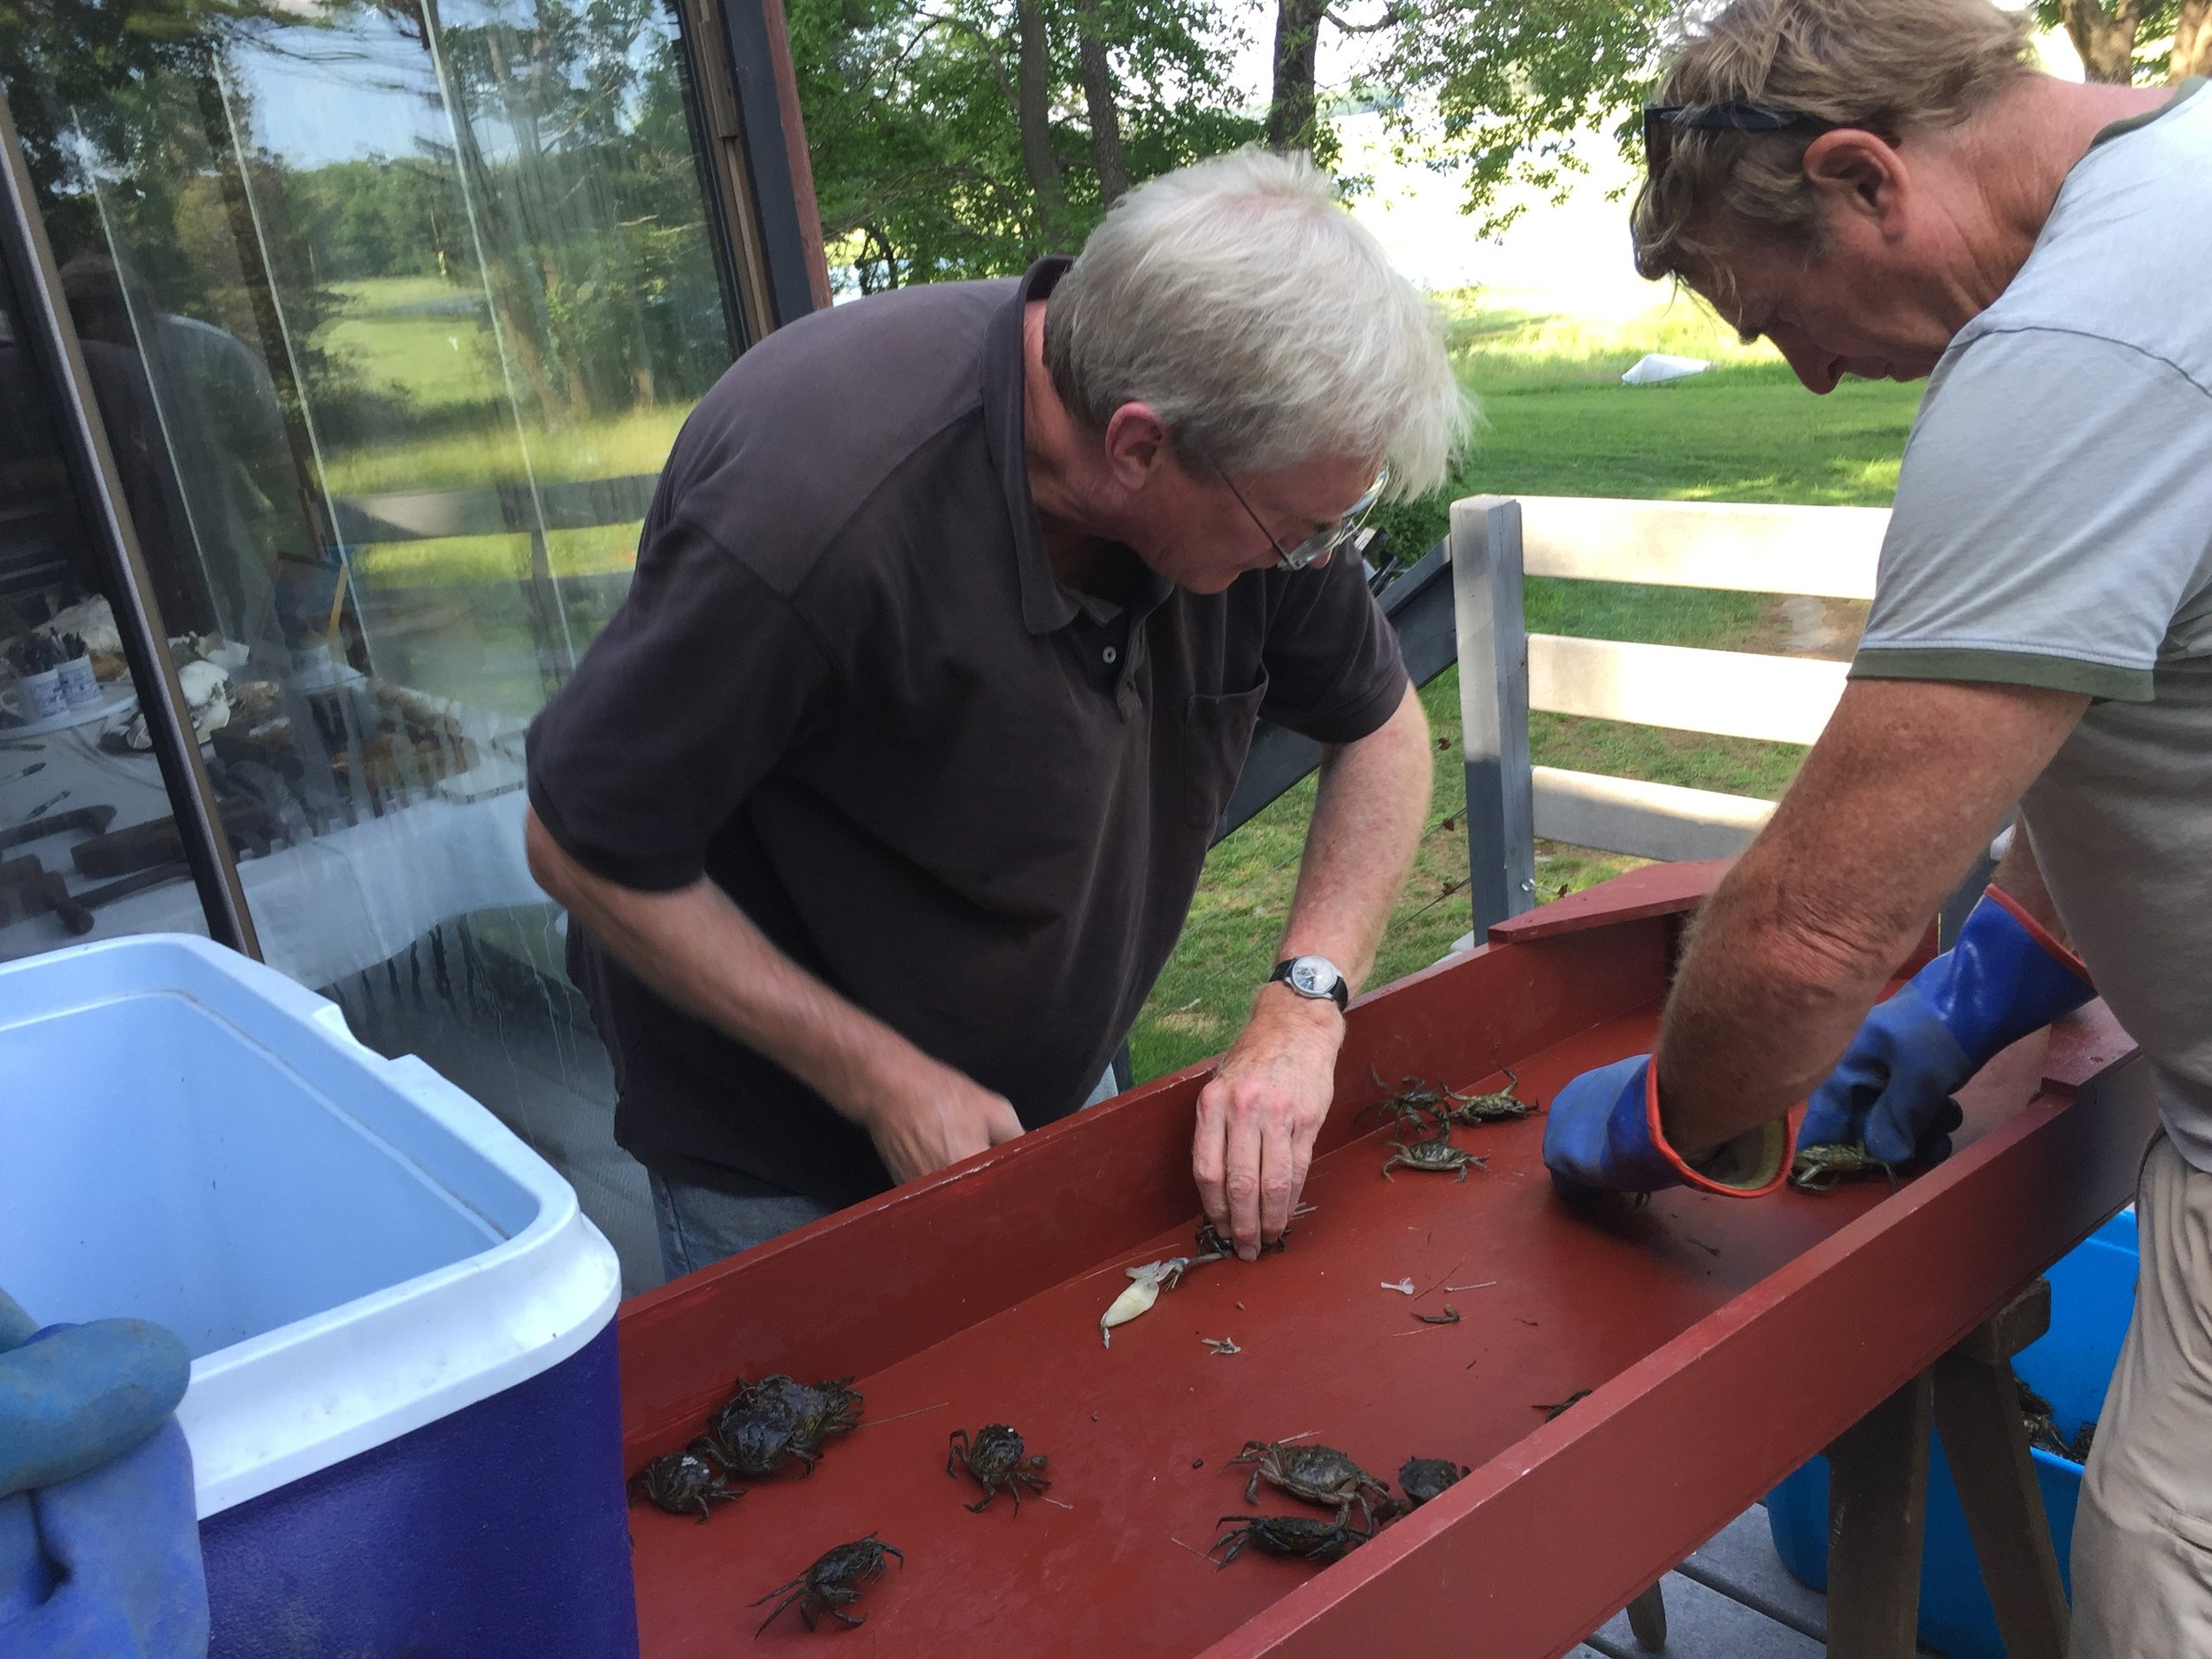 Roger sorts crabs with Peter Phippen, coastal coordinator of the Upper North Shore region of the Massachusetts Bay National Estuary Project